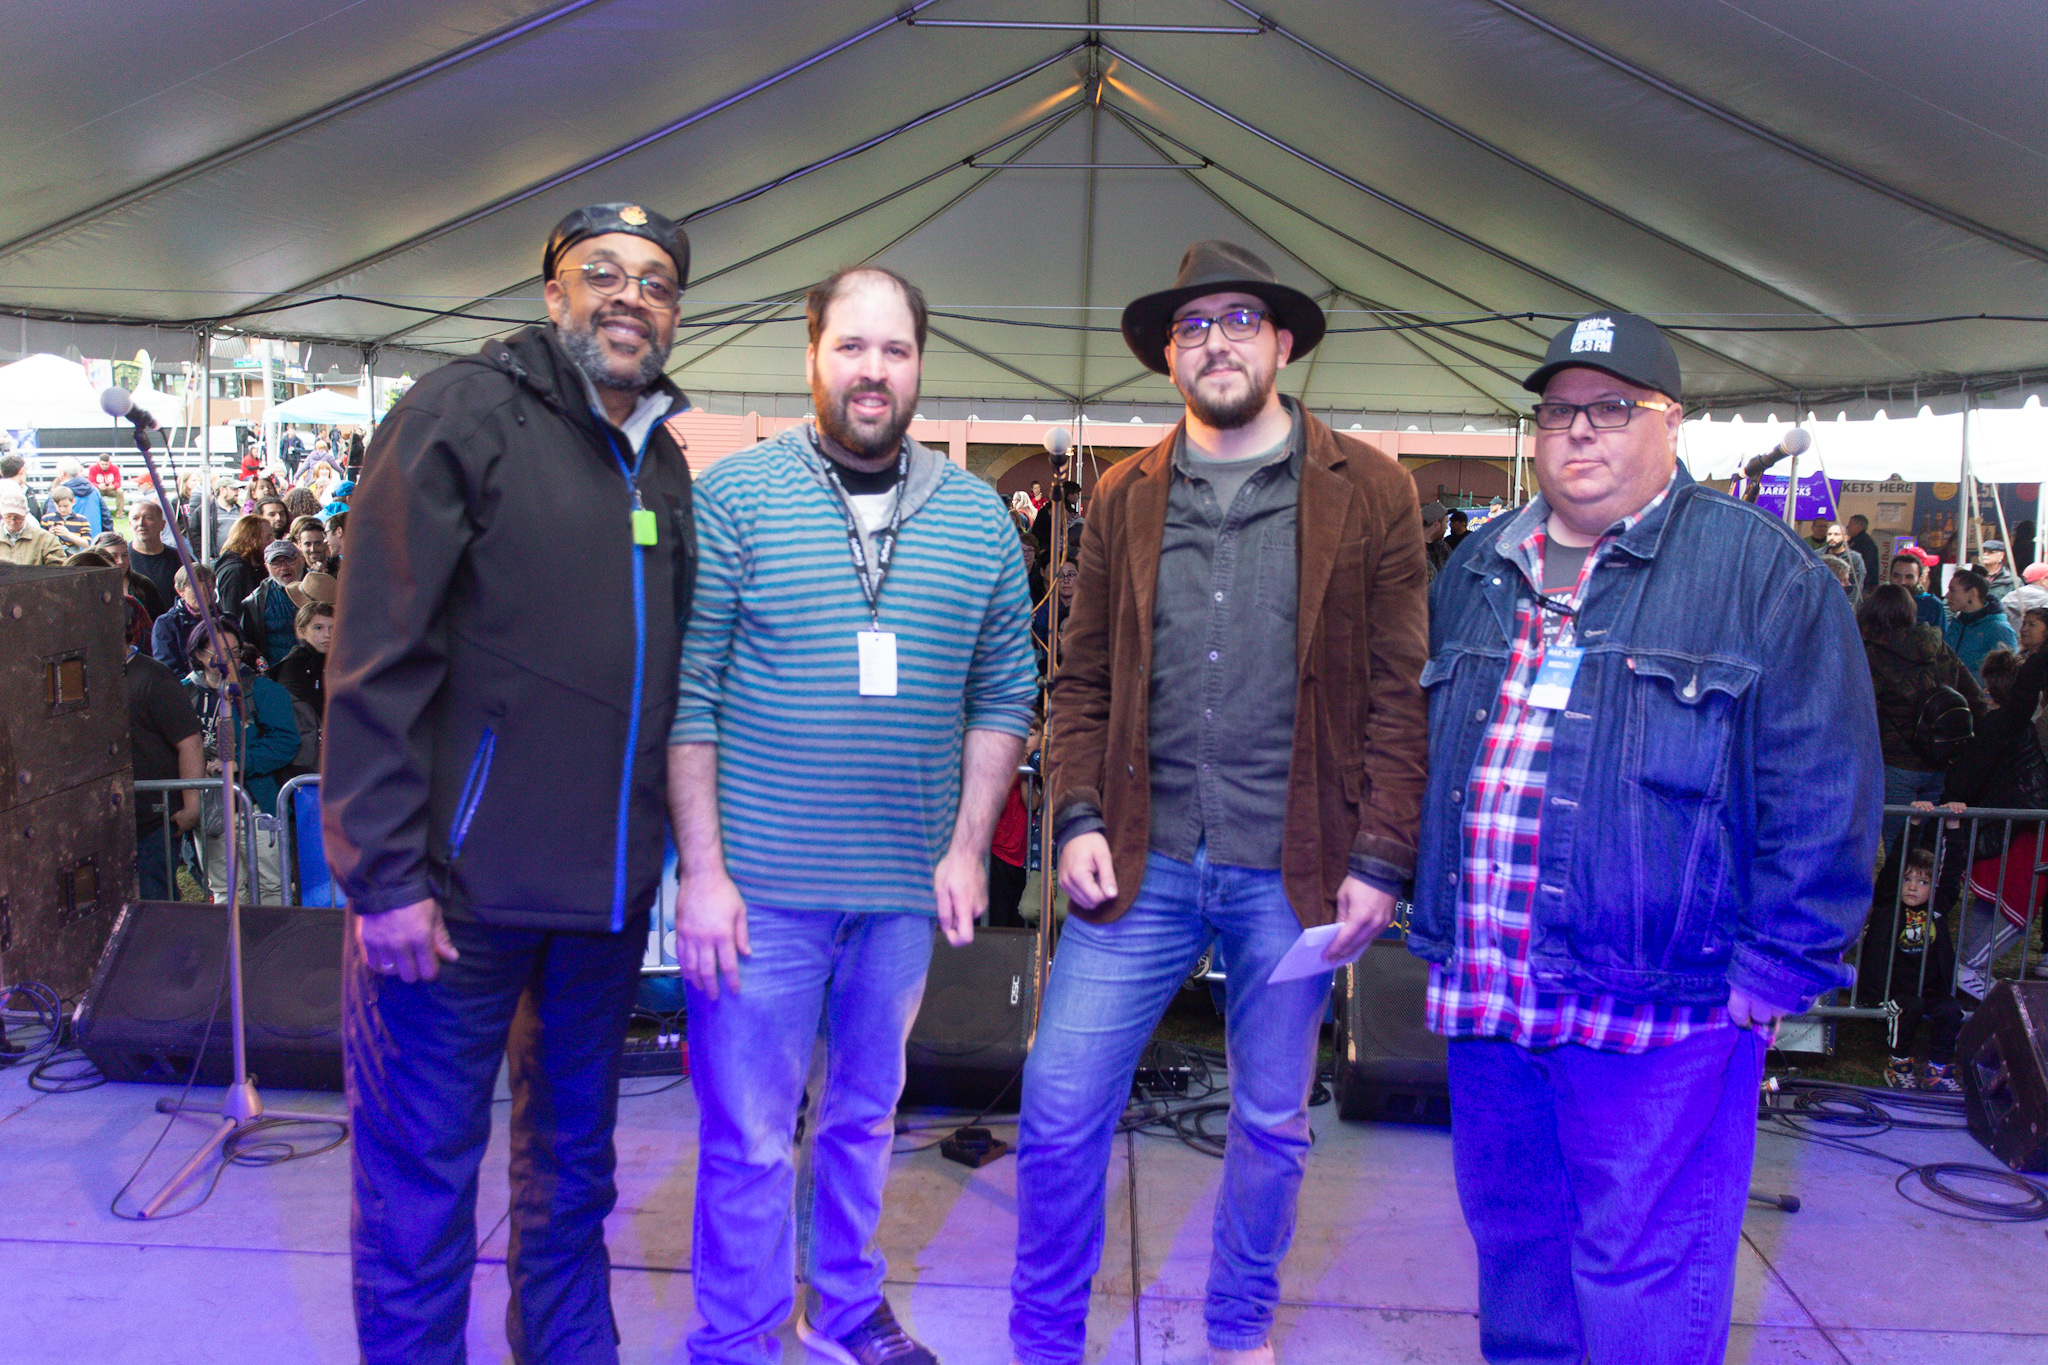 McKinley Morrison & Williams (Josh McKinley, John Morrison & Darrell Williams) with Stingray's Kenton Dunphy (New Country 92.3 (CFRK) and UP 93.1 FM (CIHI) - Photo redits: James West.